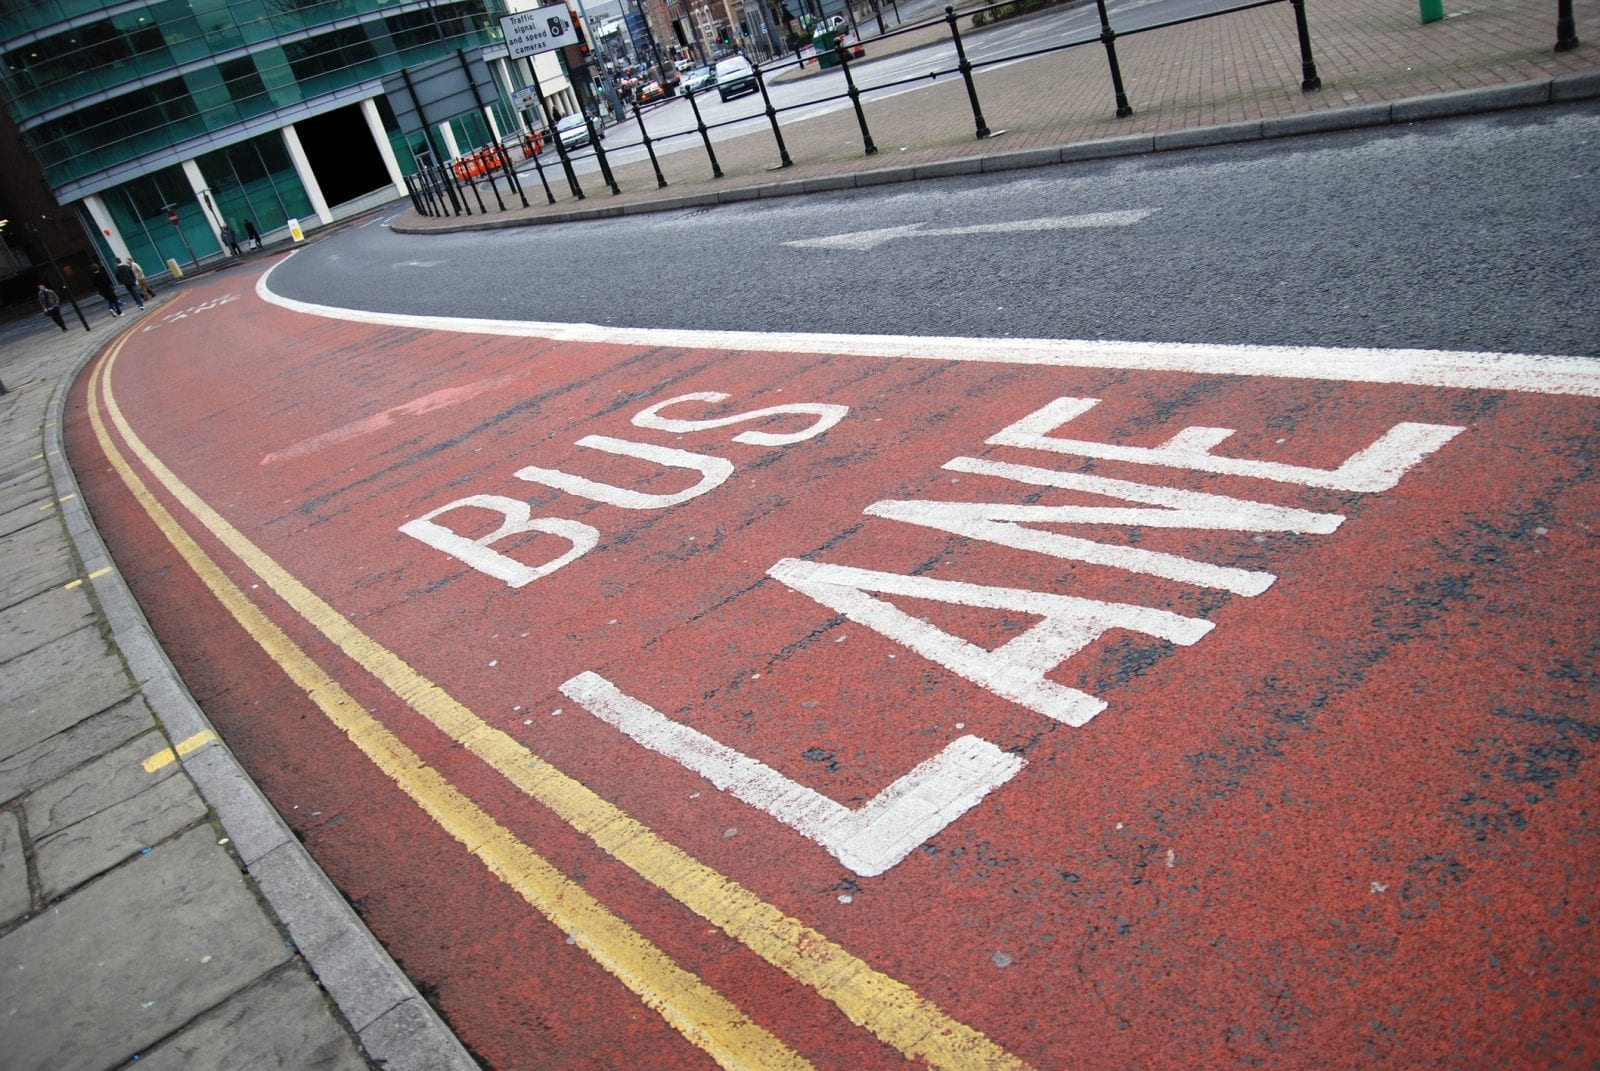 How to appeal a bus lane fine